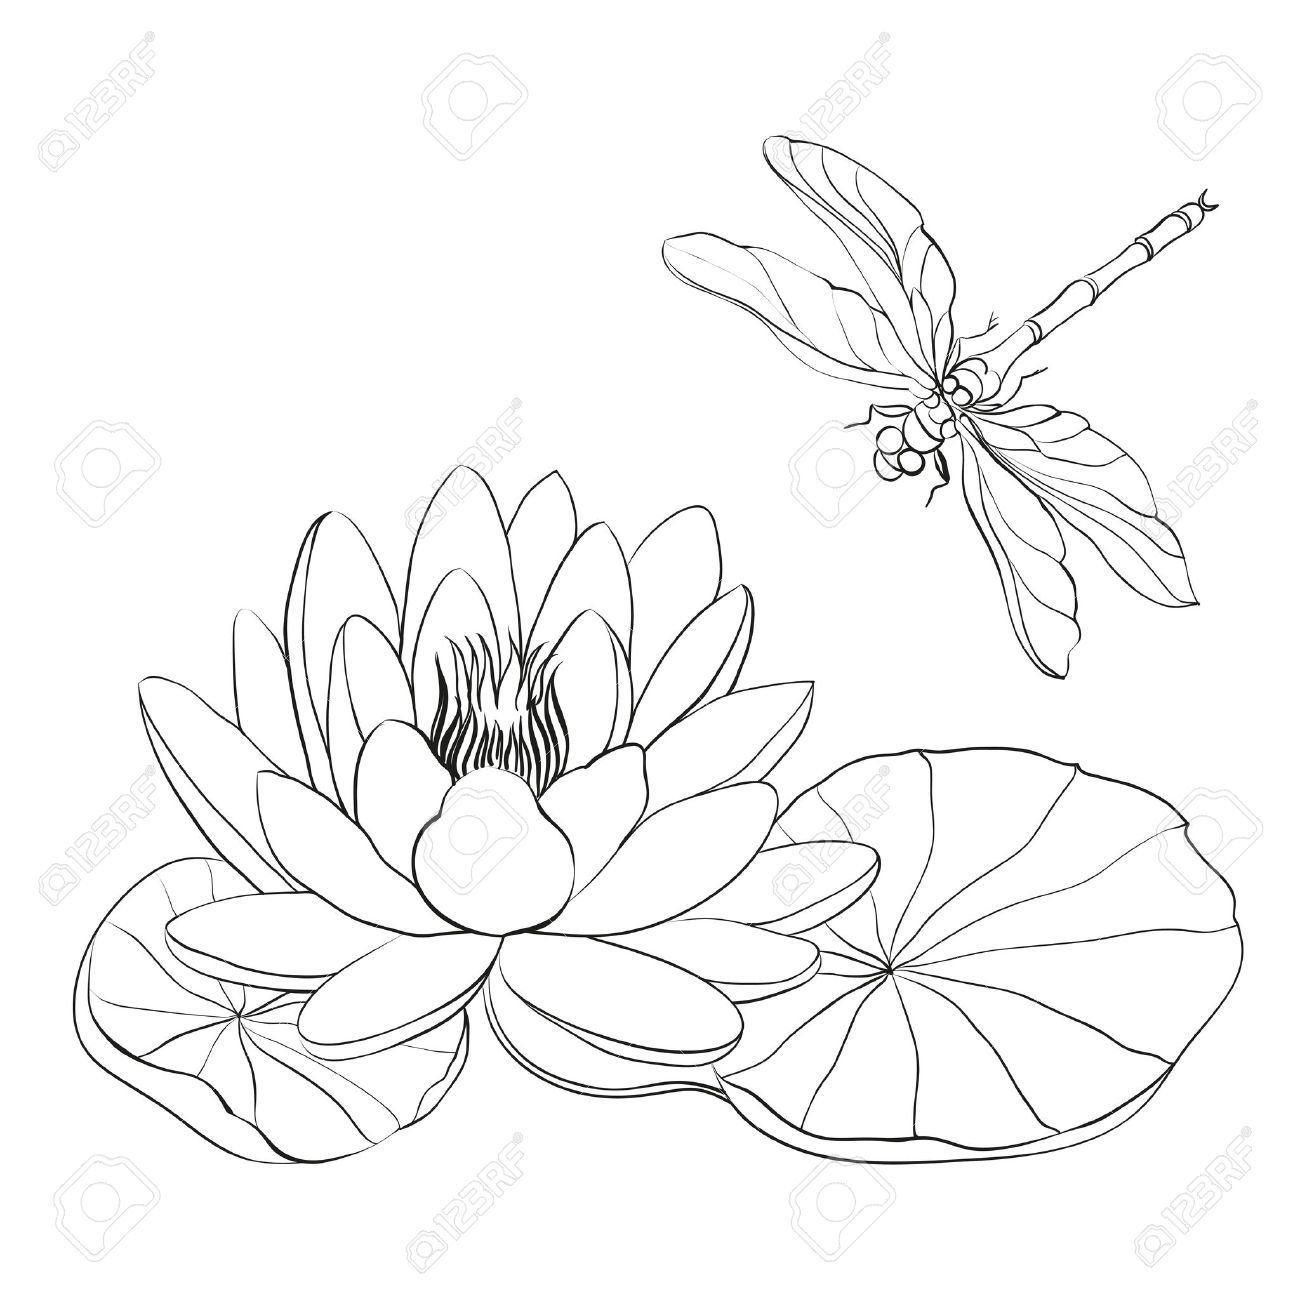 Lily Cliparts, Stock Vector And Royalty Free Lily ...